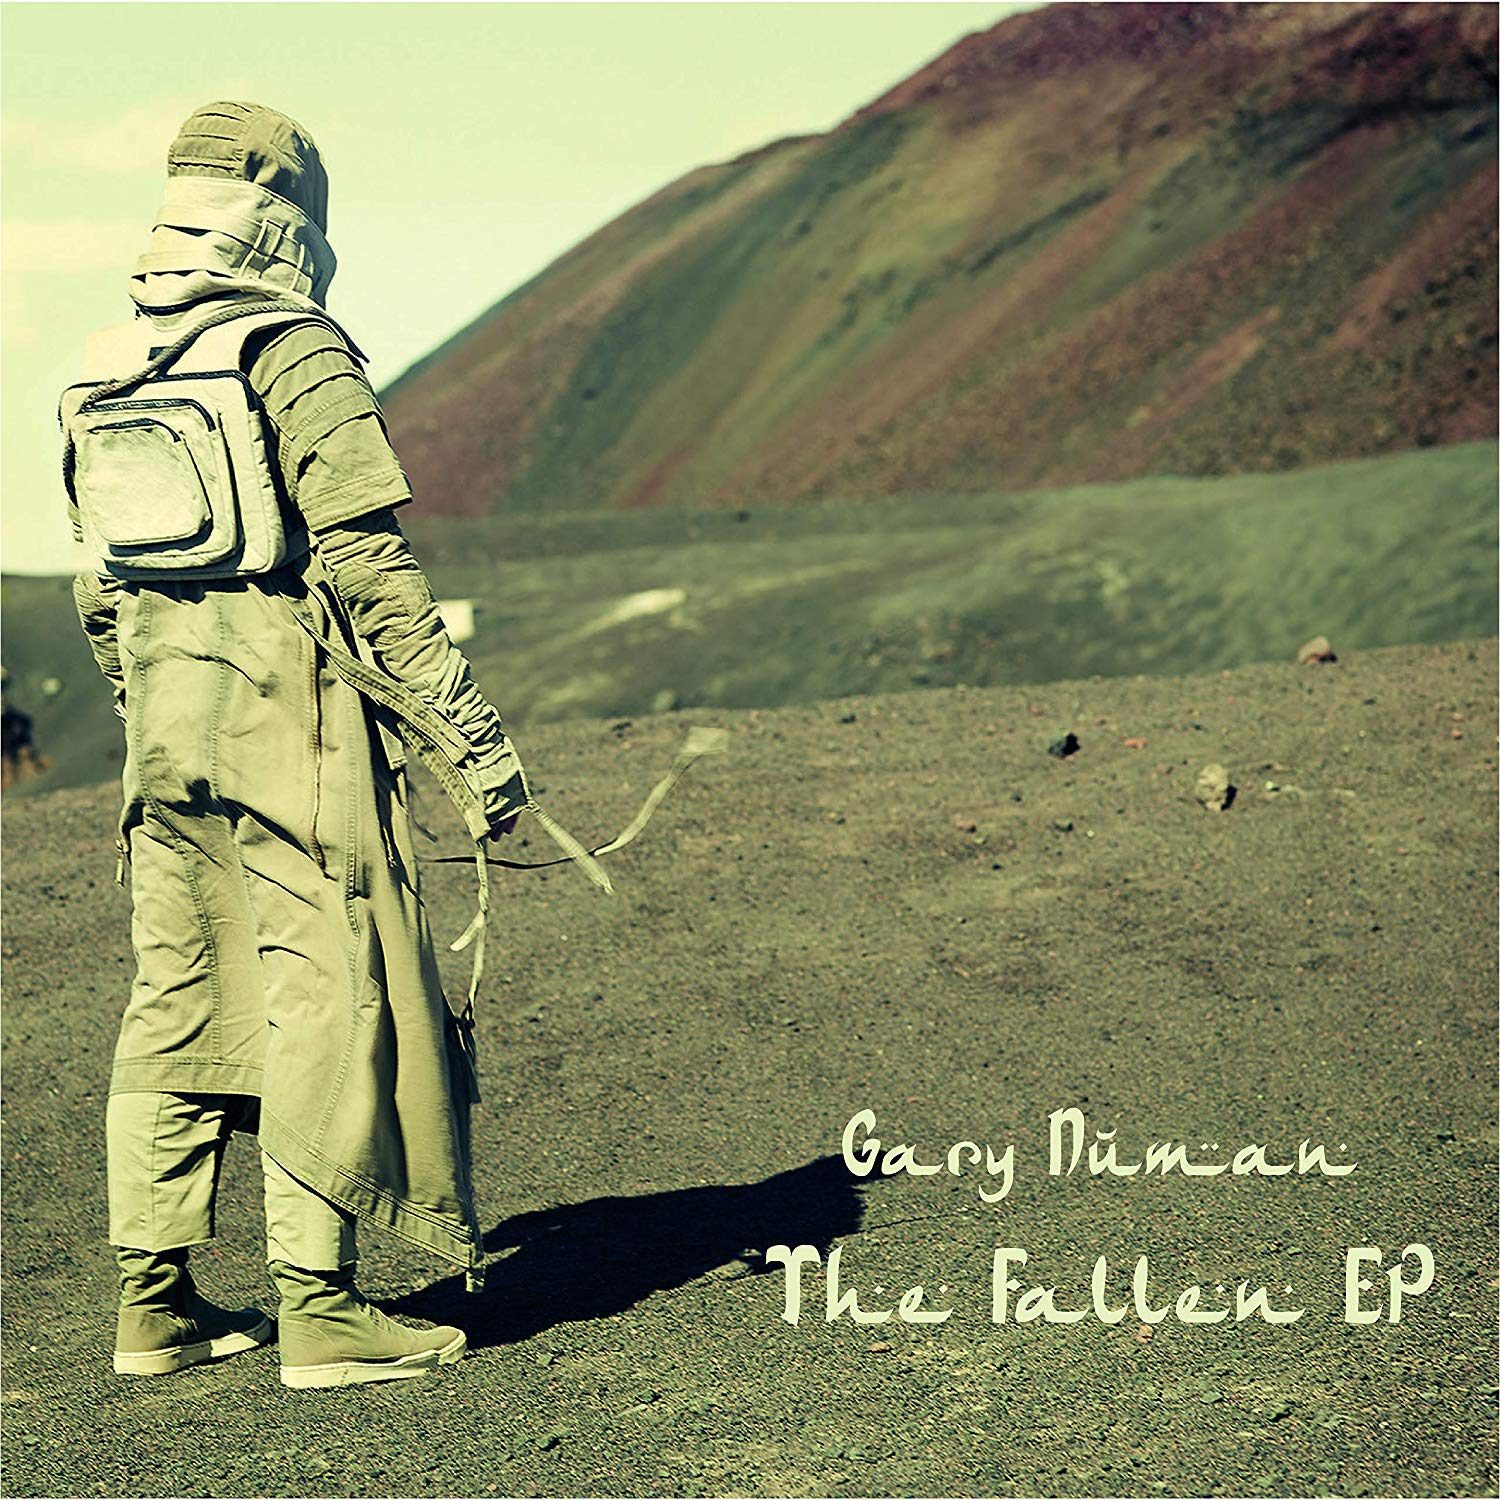 Gary Numan - The Fallen [12'' EP] (3-Stripe Colored Vinyl)